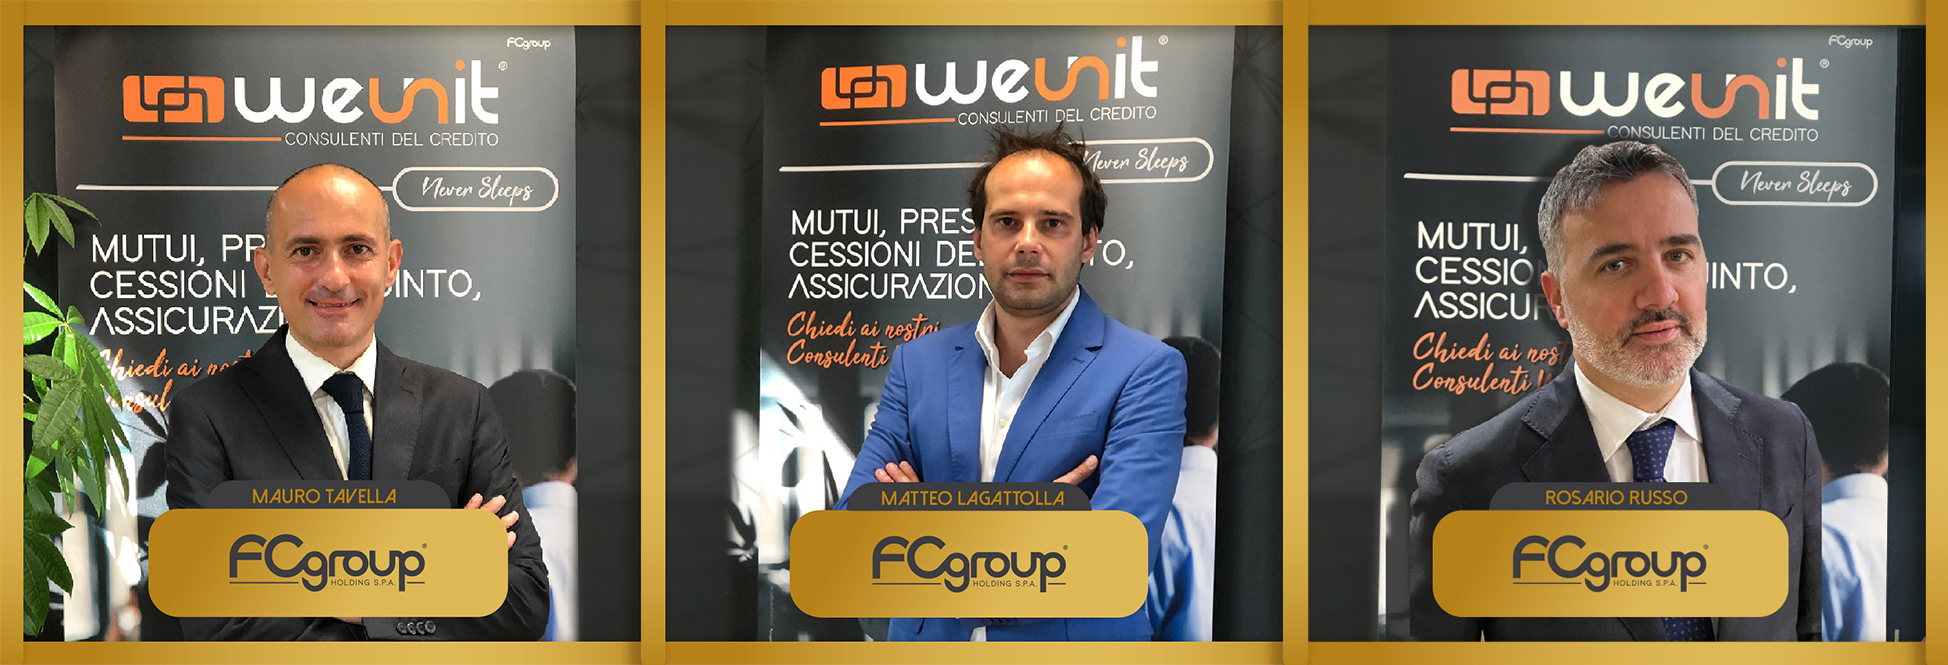 Nuovi manager weunit